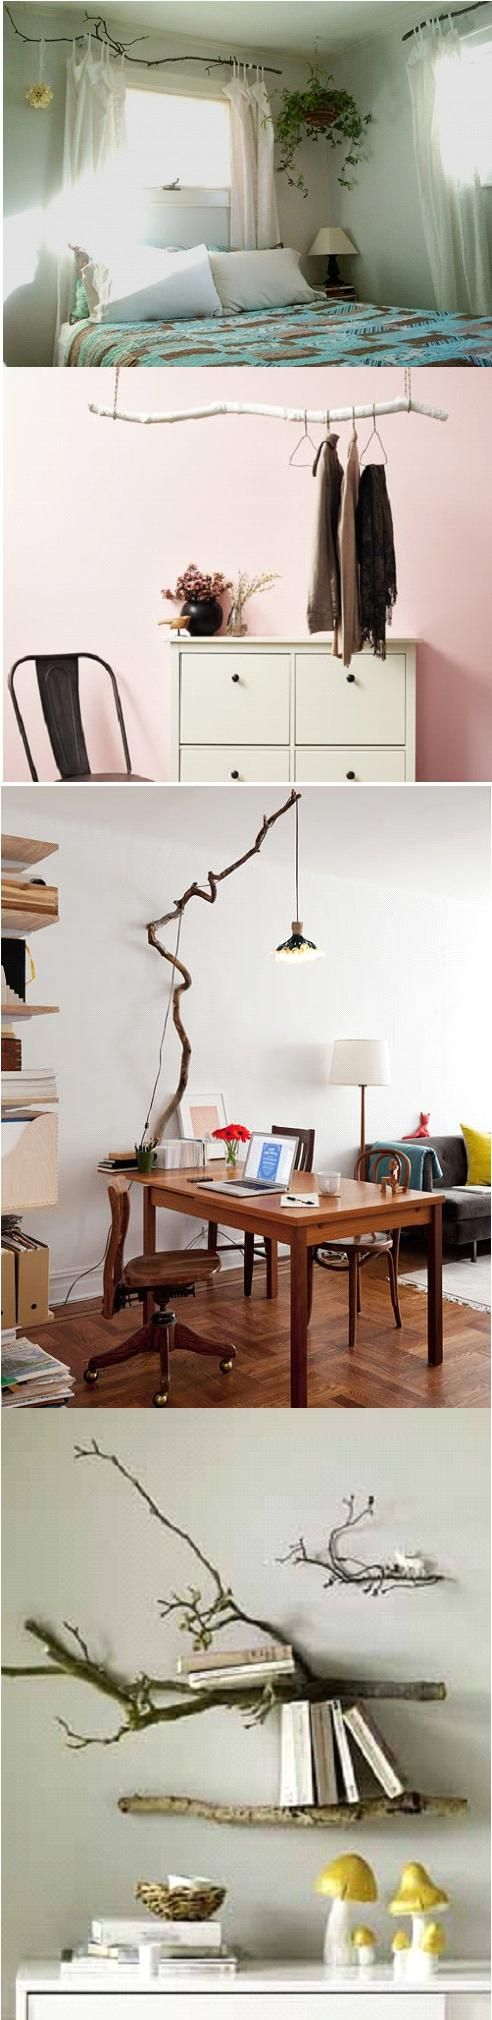 Decorating with tree branches #diy: